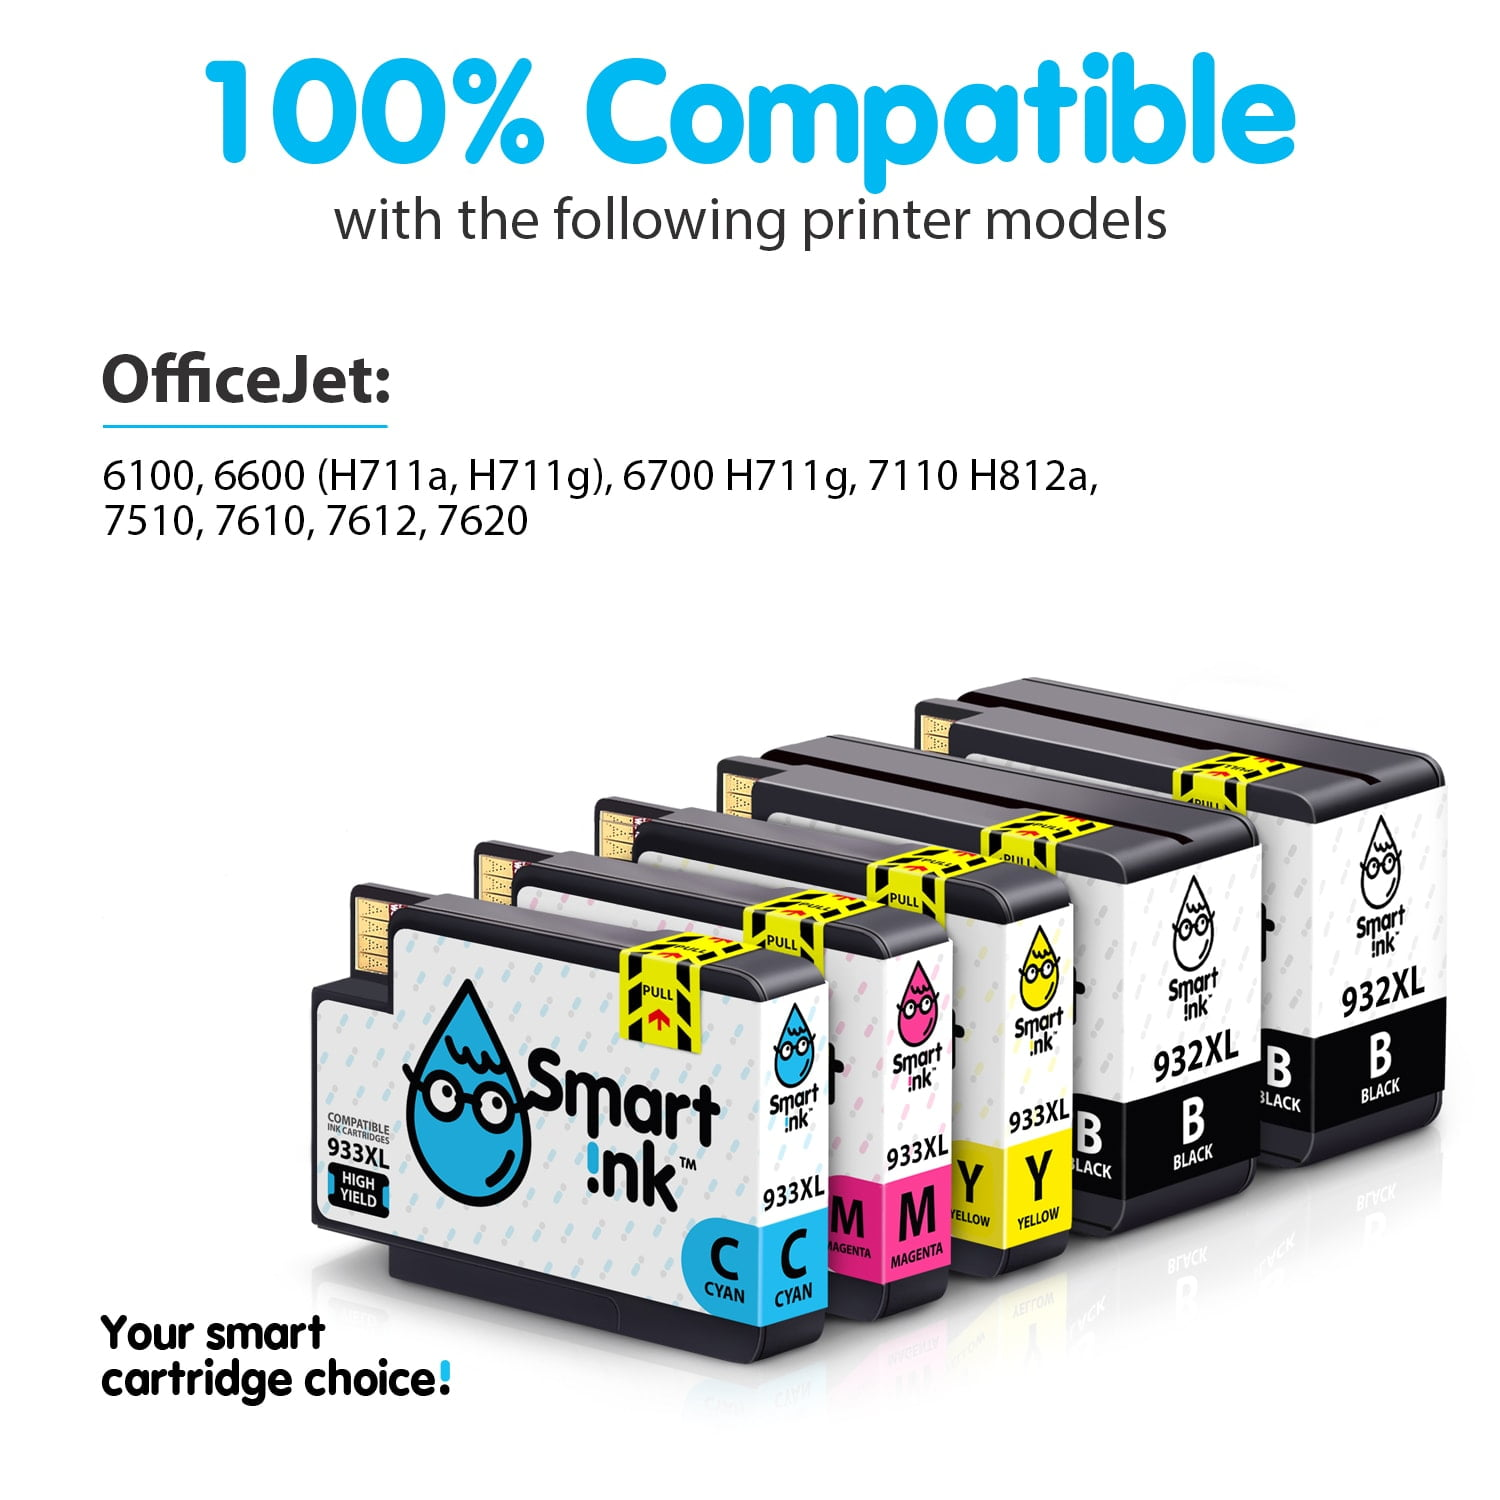 Cyan, Magenta, Yellow ePrinter 7610 7612 Printers Smart Print Supplies Compatible 933XL 933 XL High Yield Ink Cartridge Replacement for HP OfficeJet 6100 7110 - 6 Pack